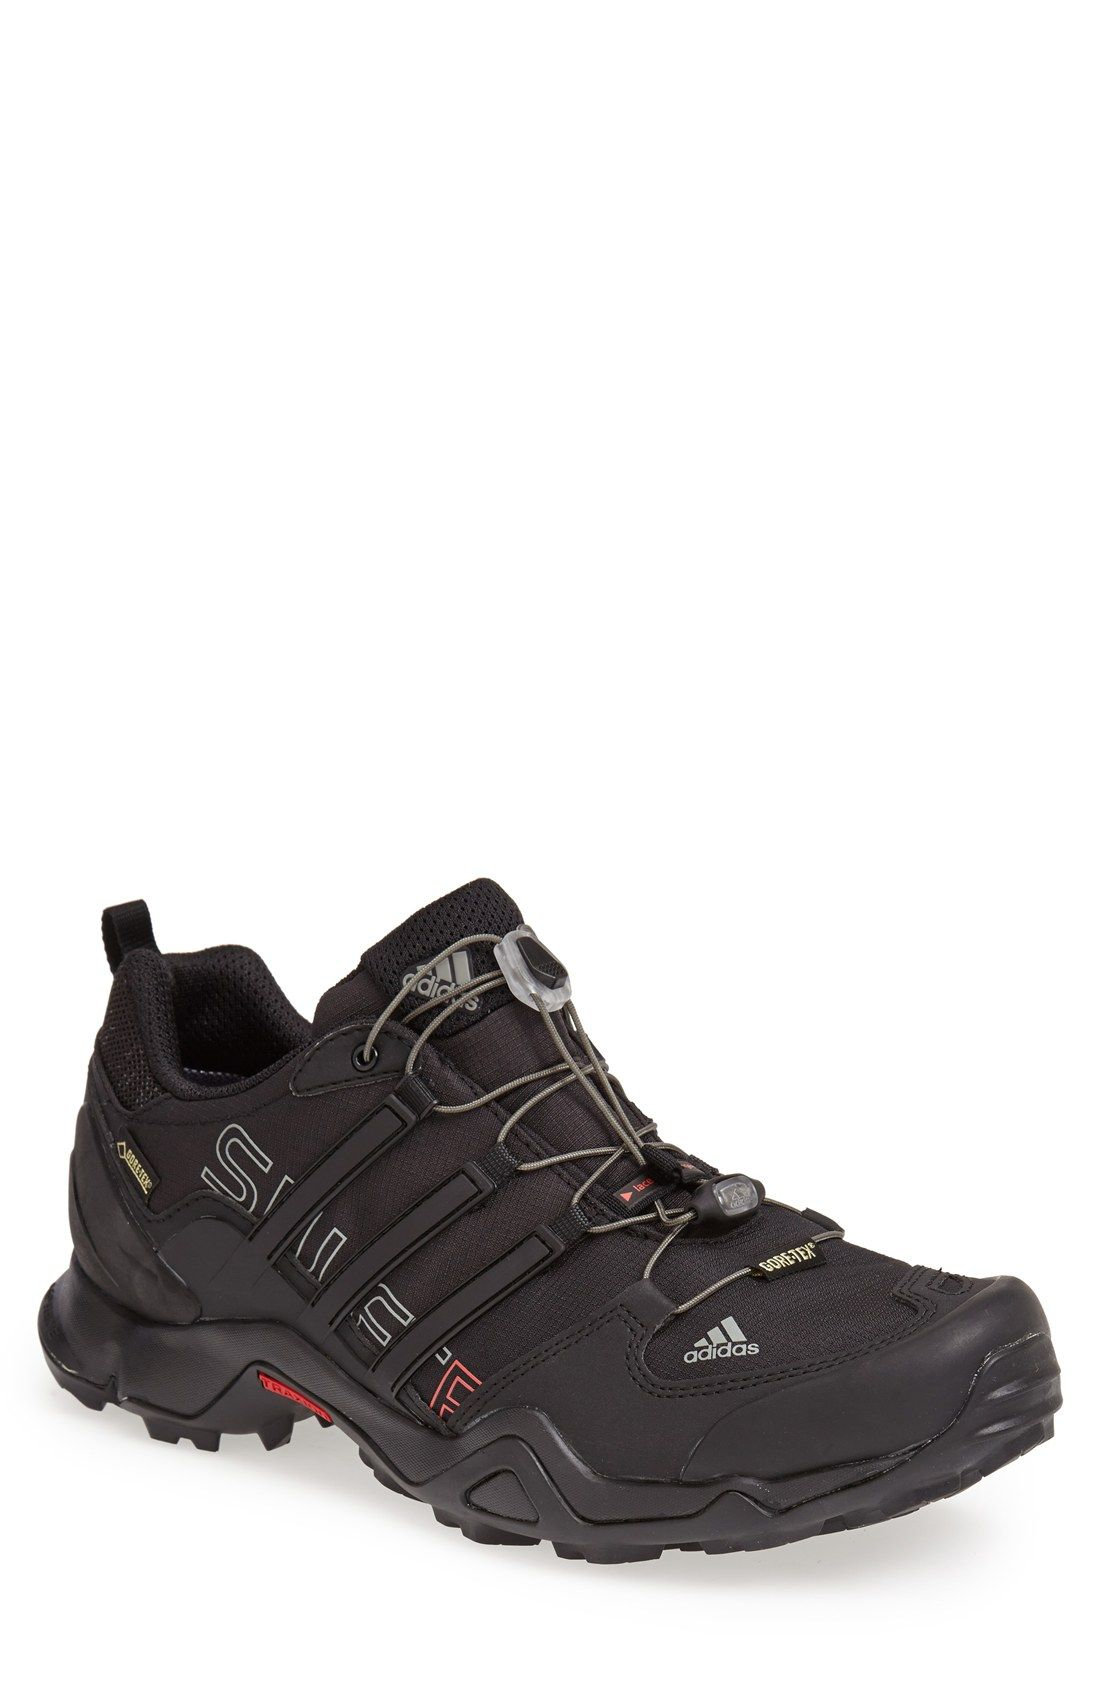 19068861508 adidas  Terrex Swift R GTX  Gore-Tex® Hiking Shoe (Men)